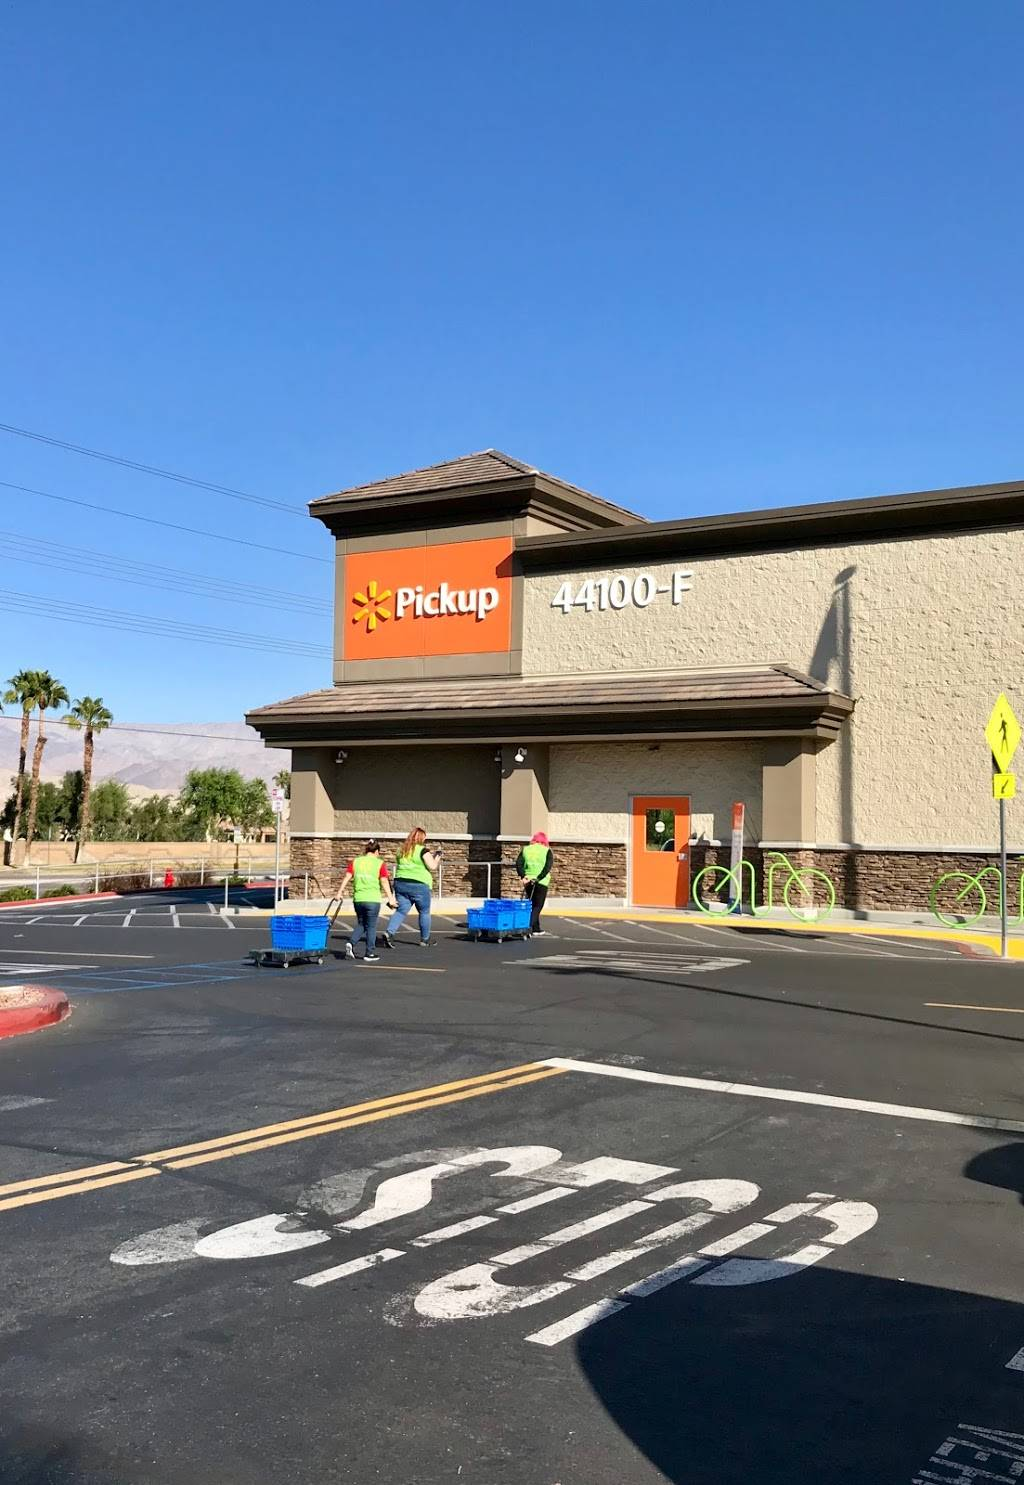 Heritage Court | shopping mall | 44100 Jefferson St, Indio, CA 92201, USA | 7608046900 OR +1 760-804-6900